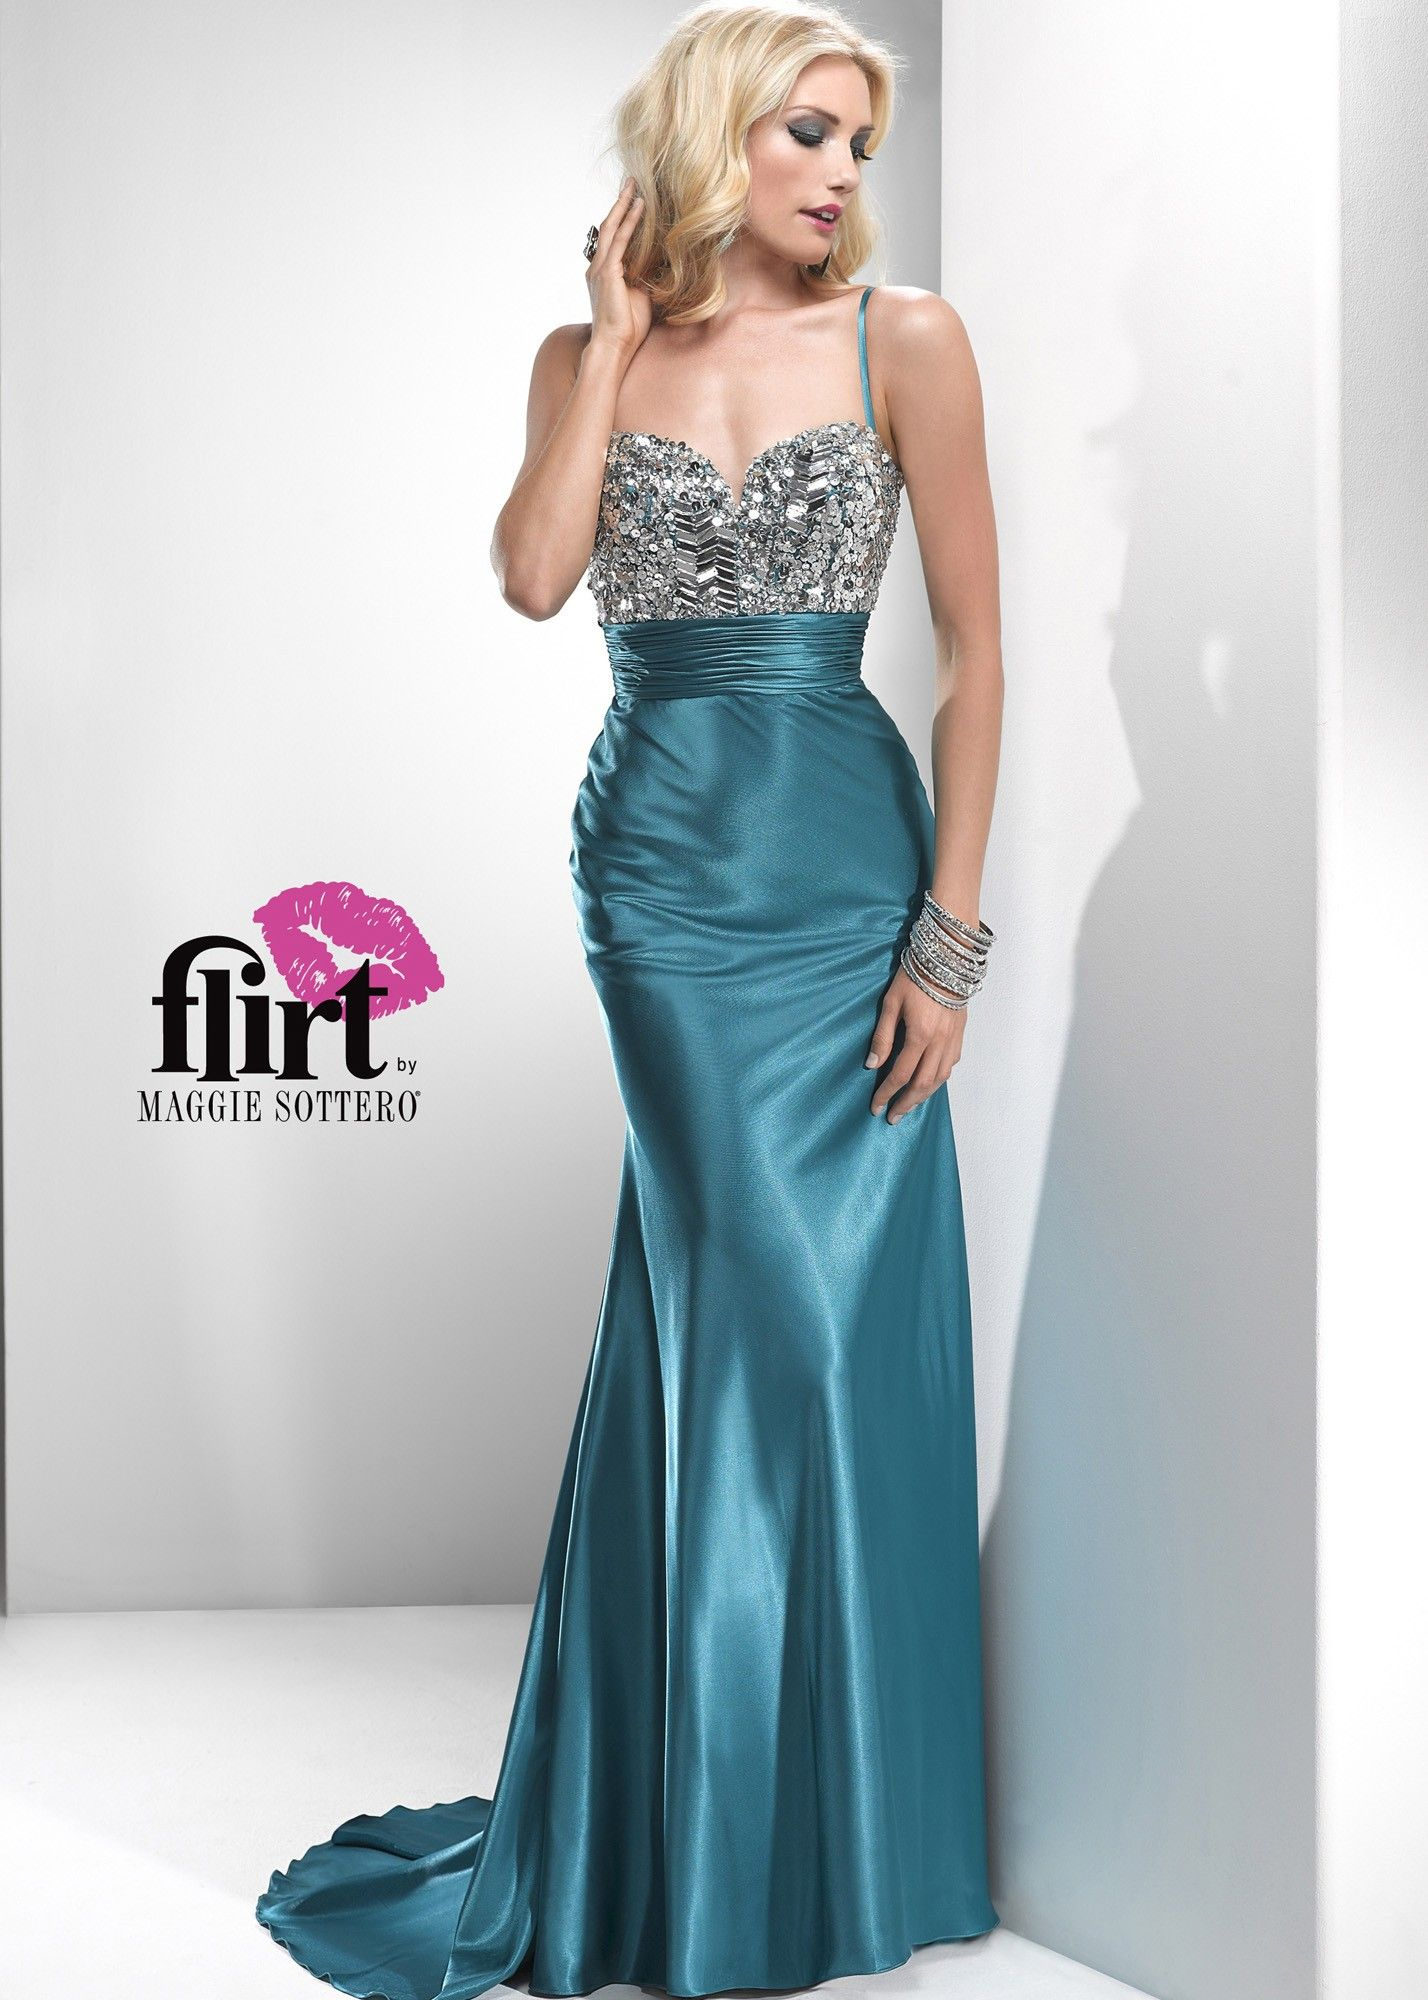 Flirt by Maggie Sottero P2777 - Vintage Teal Satin Evening Gown Prom ...